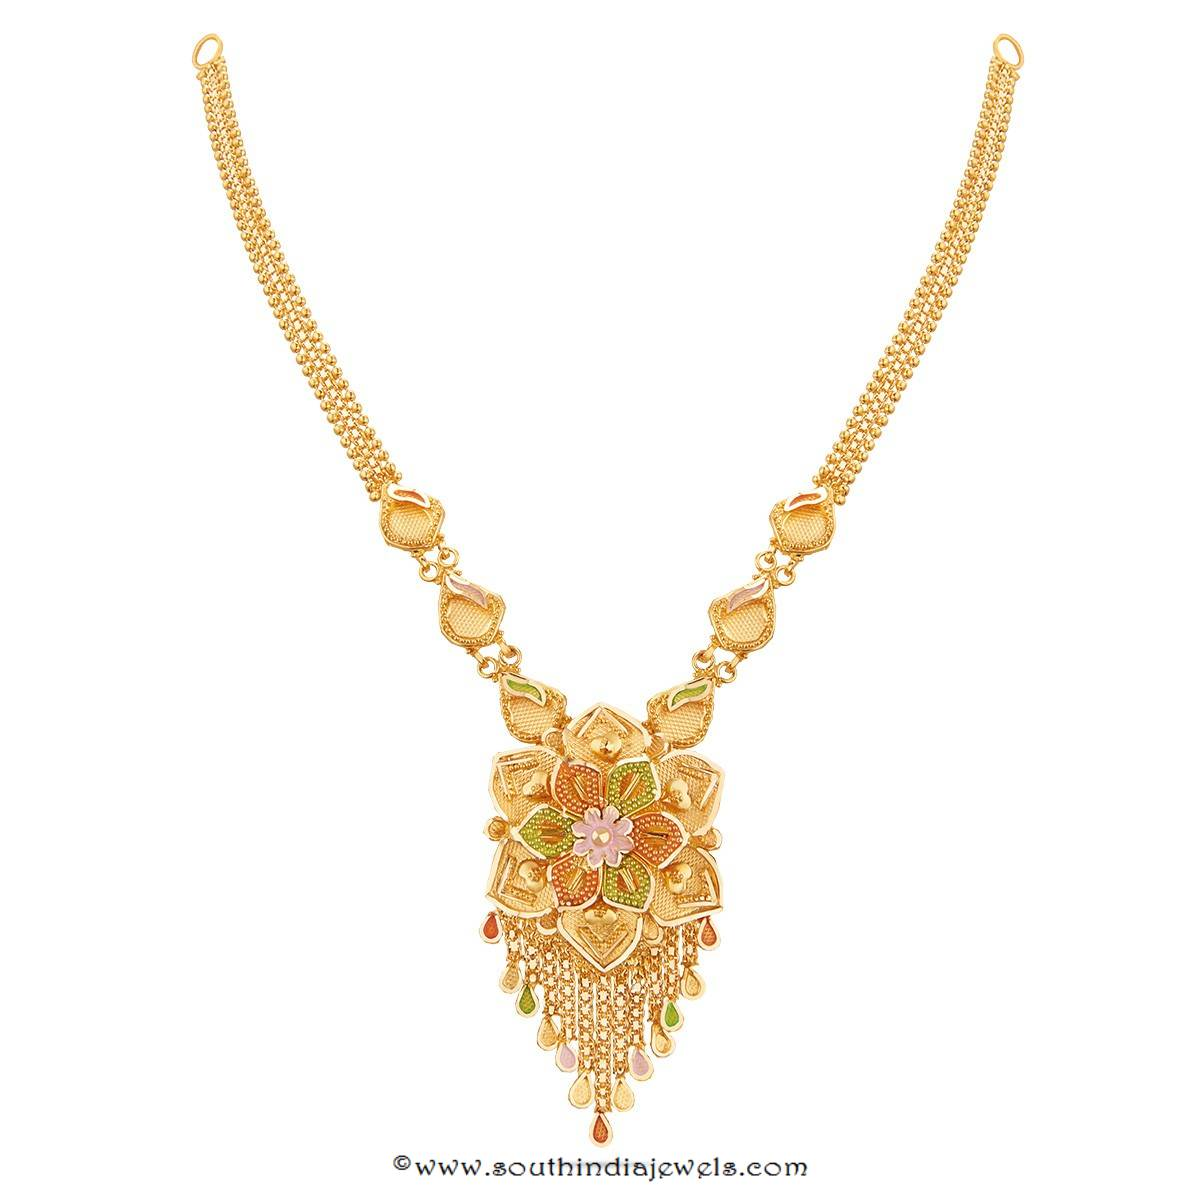 22K Gold Floral Necklace Design from Thangamayil ~ South ...